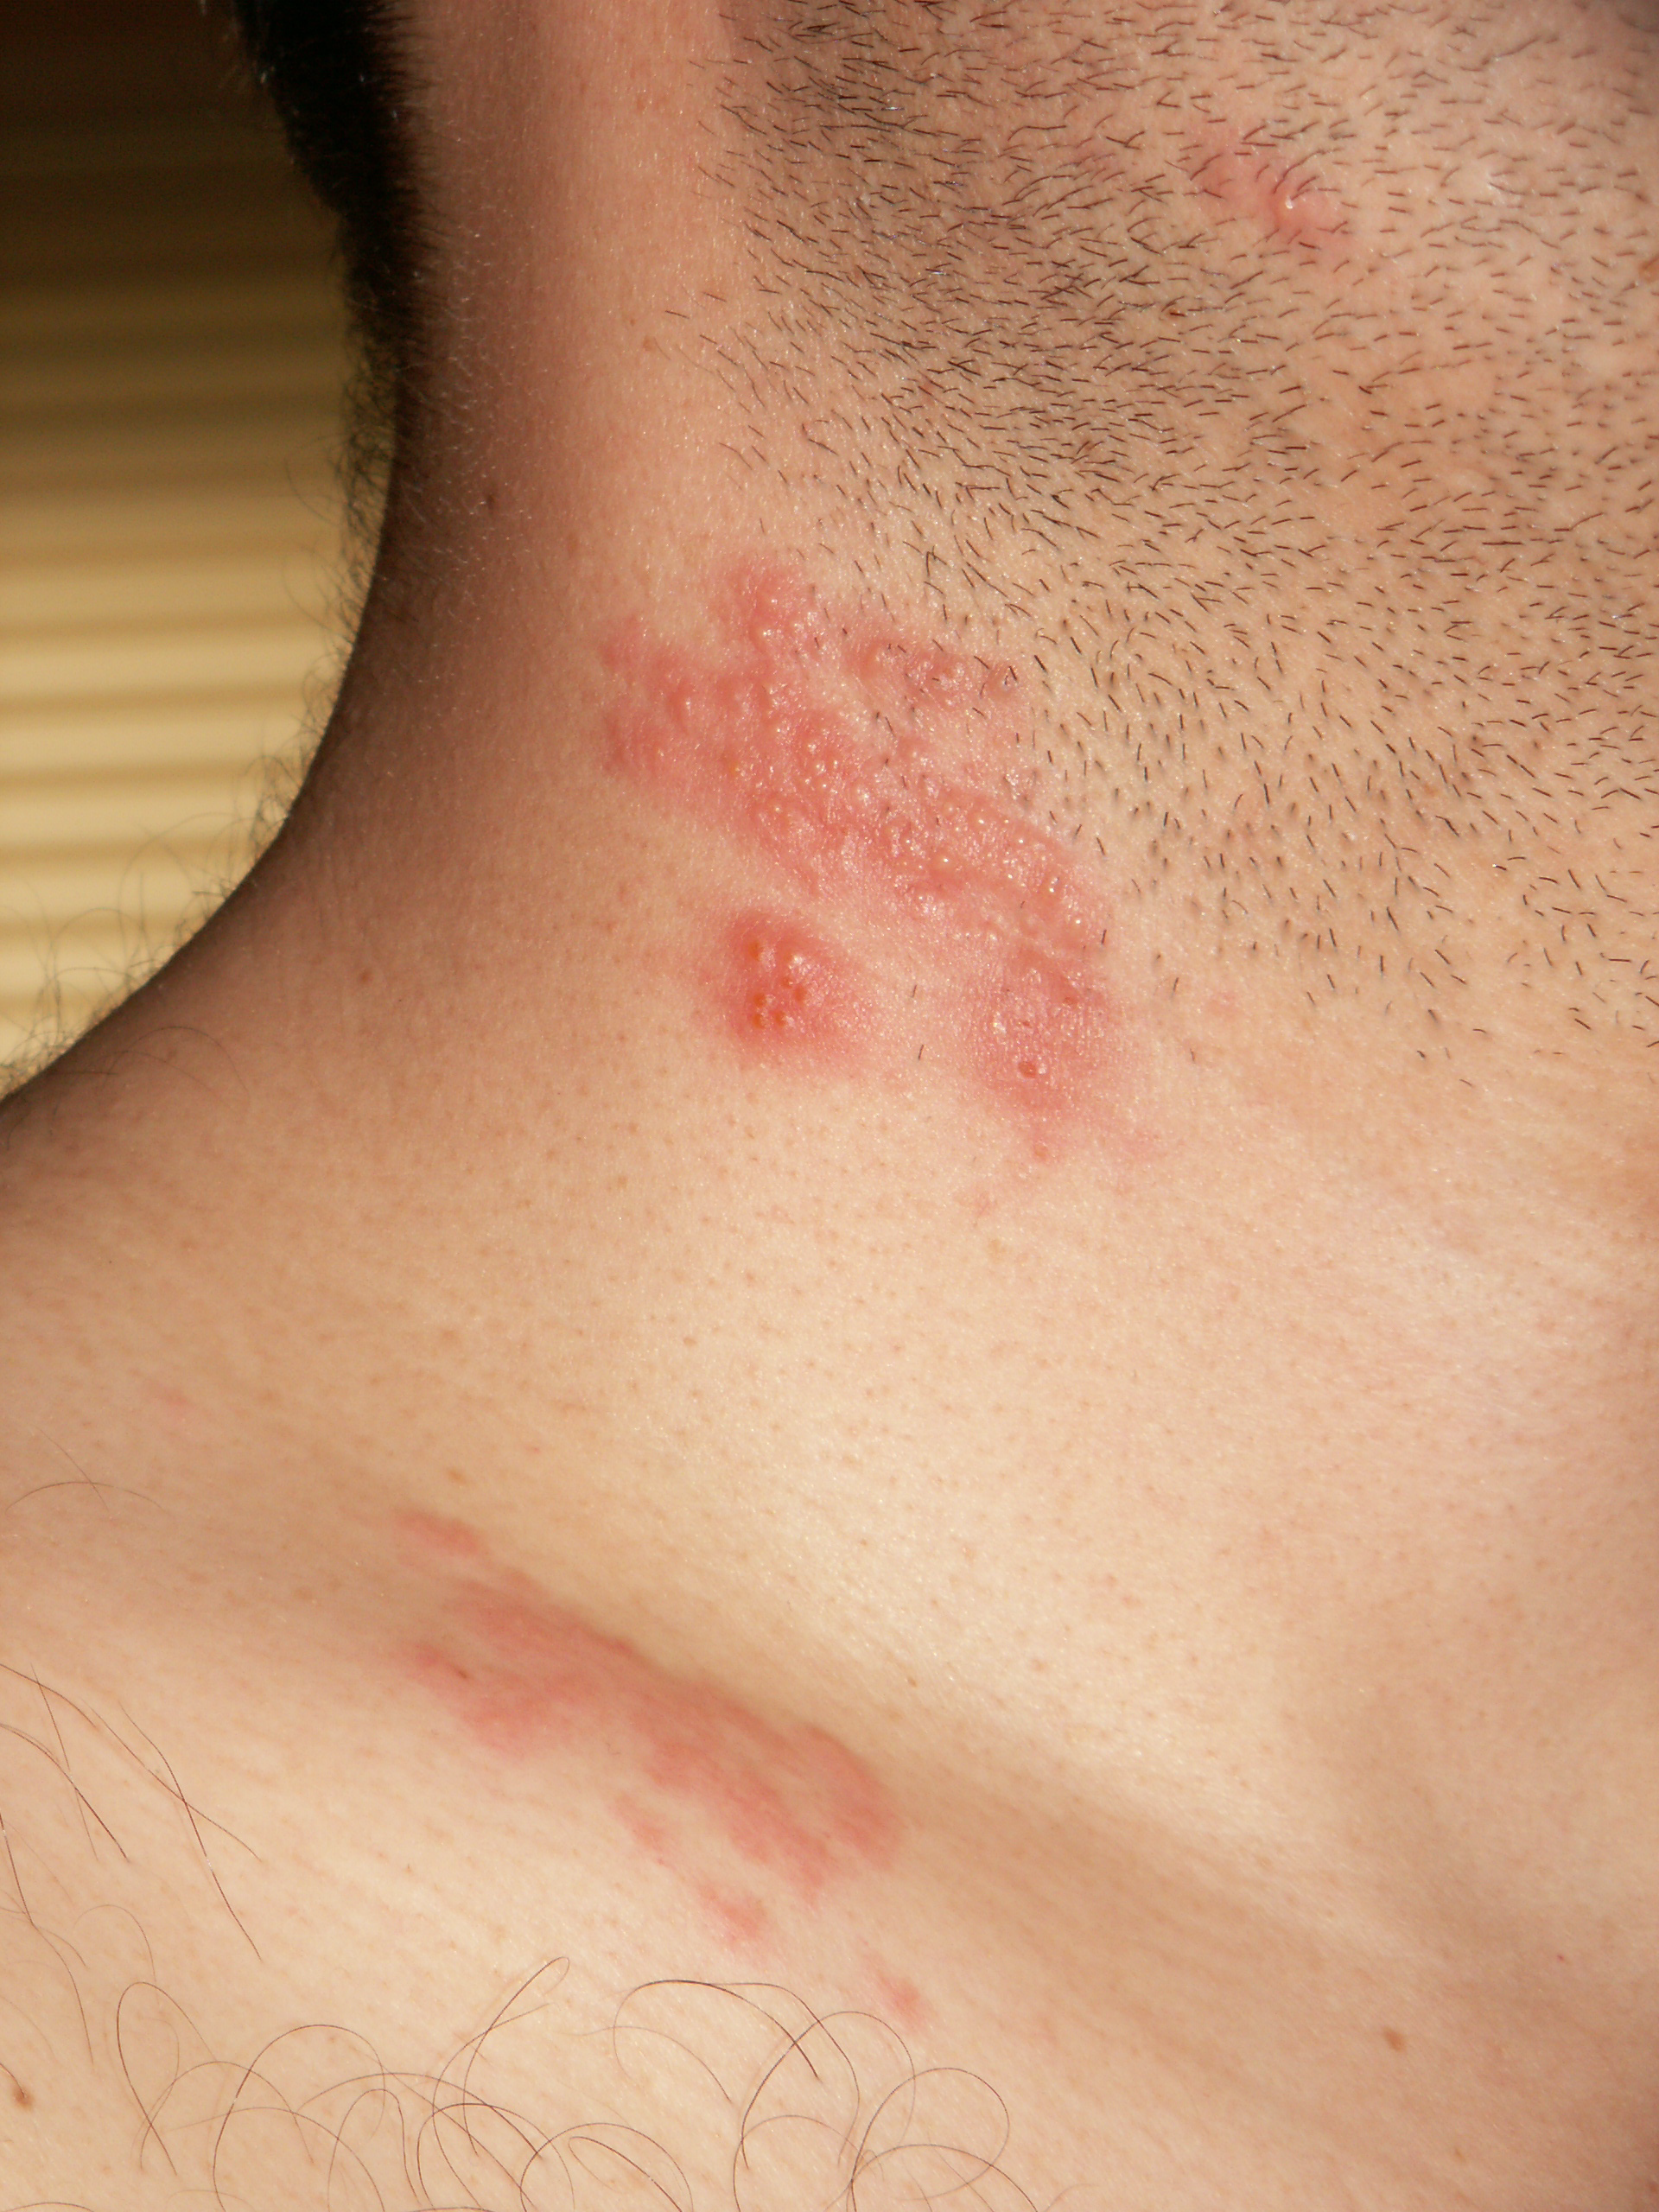 Recurrent shingles in adults